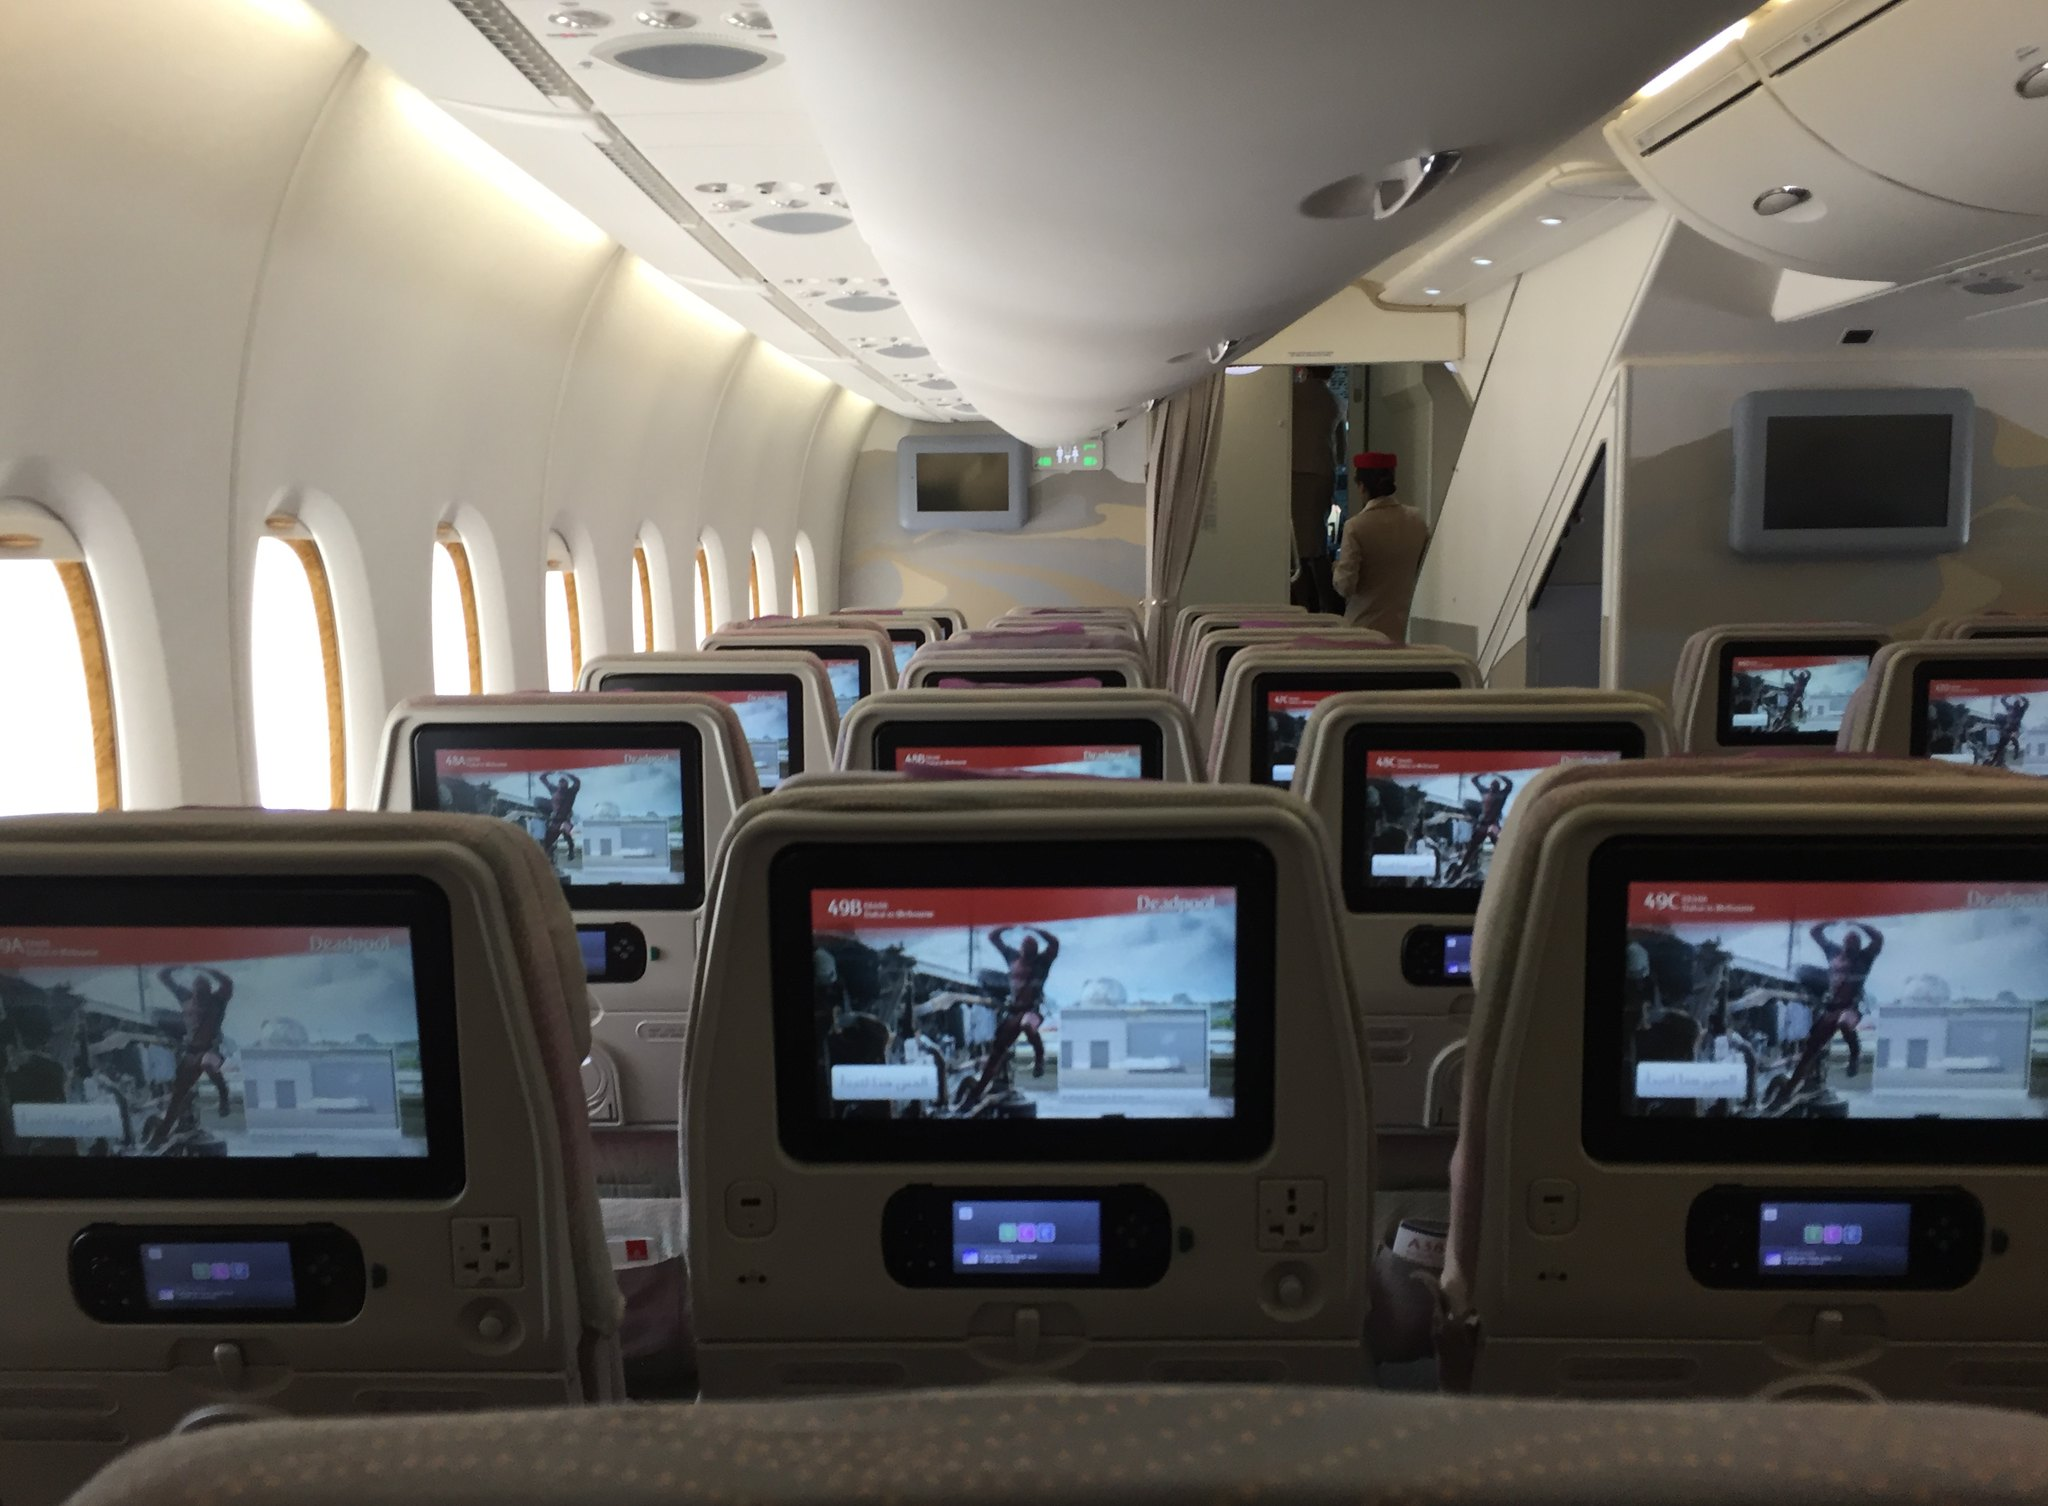 review of emirates flight from dubai to melbourne in economy. Black Bedroom Furniture Sets. Home Design Ideas